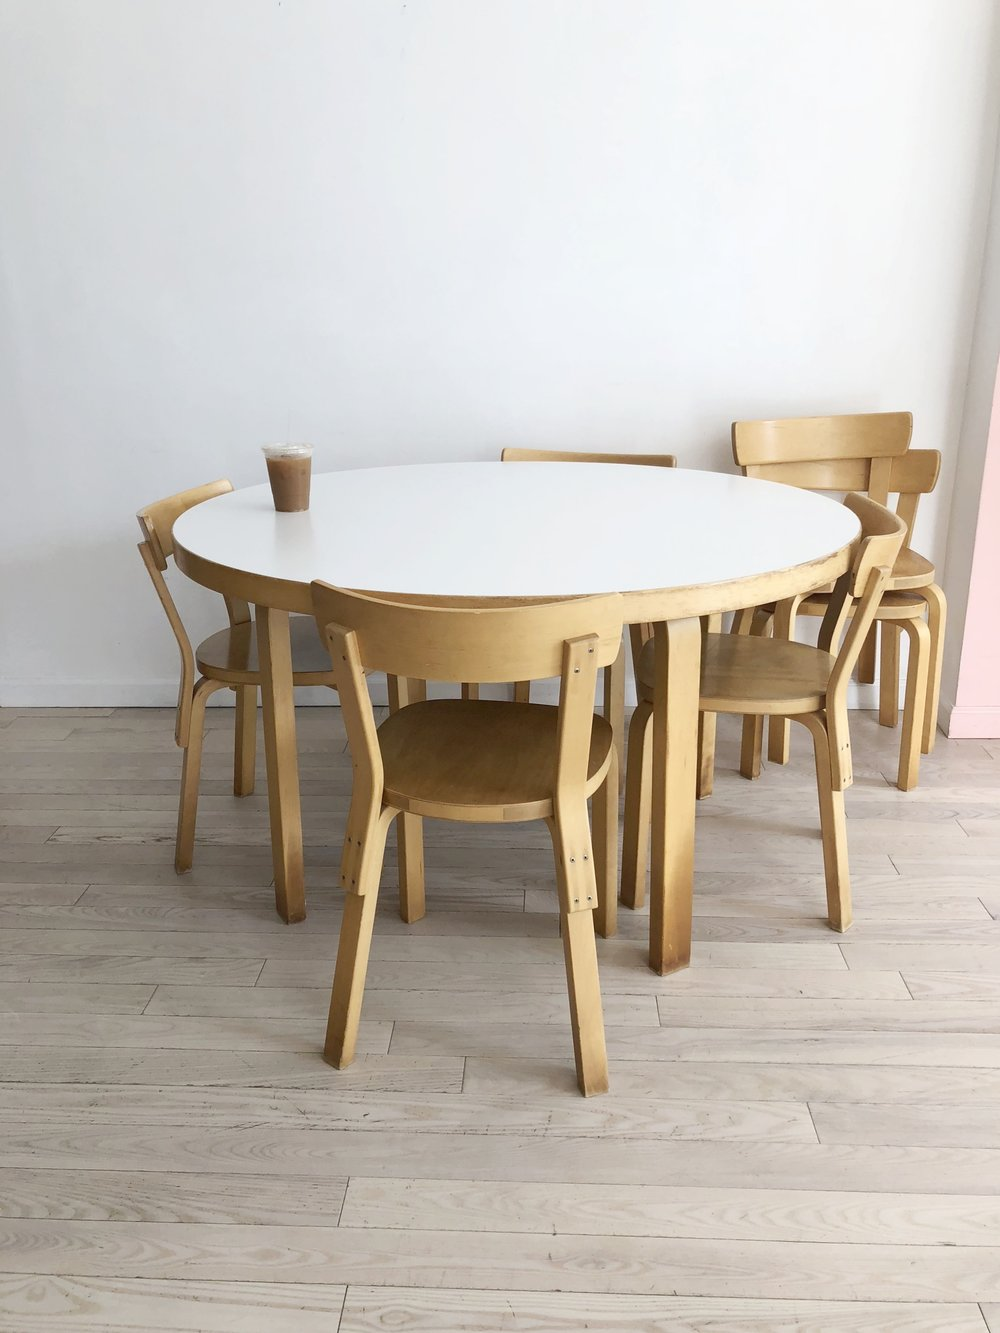 Vintage Alvar Aalto Dining Table 6 Dining Chairs Set Home Union Nyc